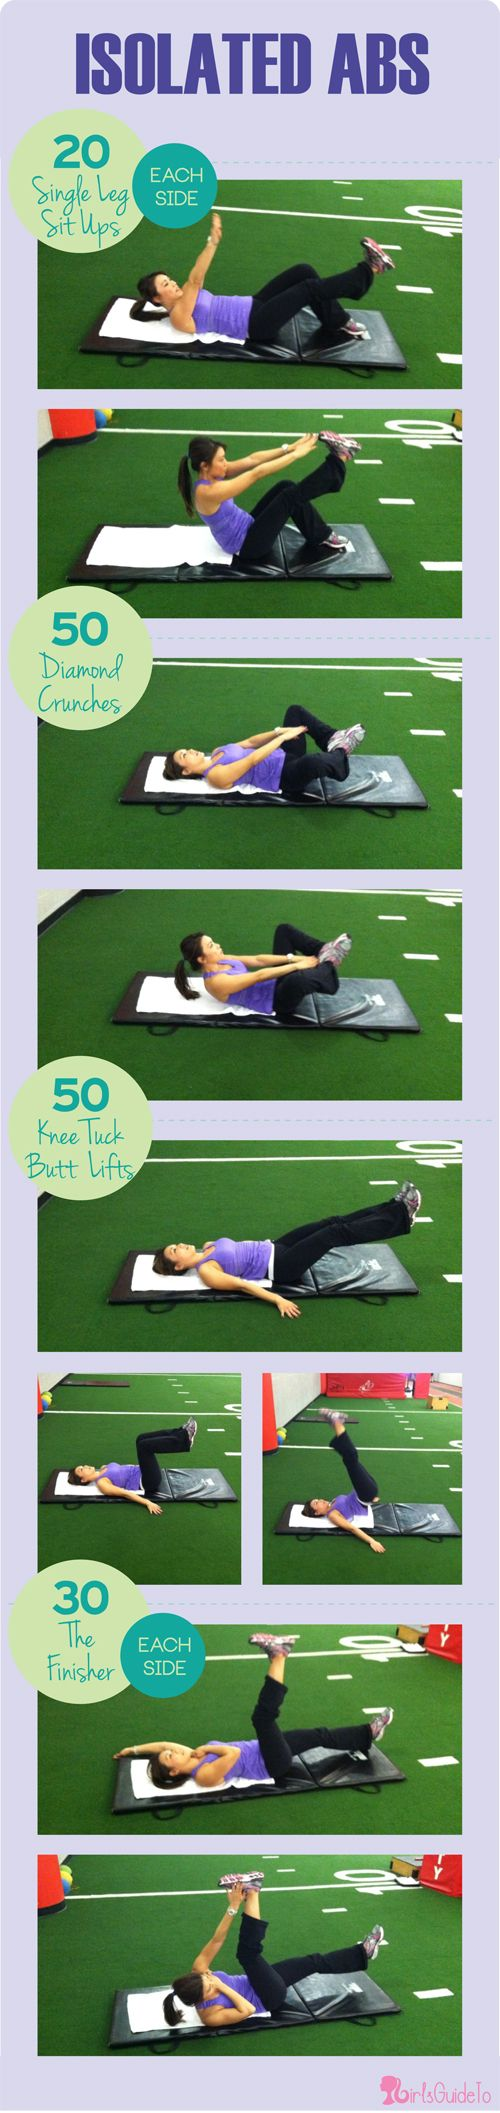 GirlsGuideTo | Workout Wednesday: Burn Belly Fat With This Hard CORE Workout | Isolated Abs